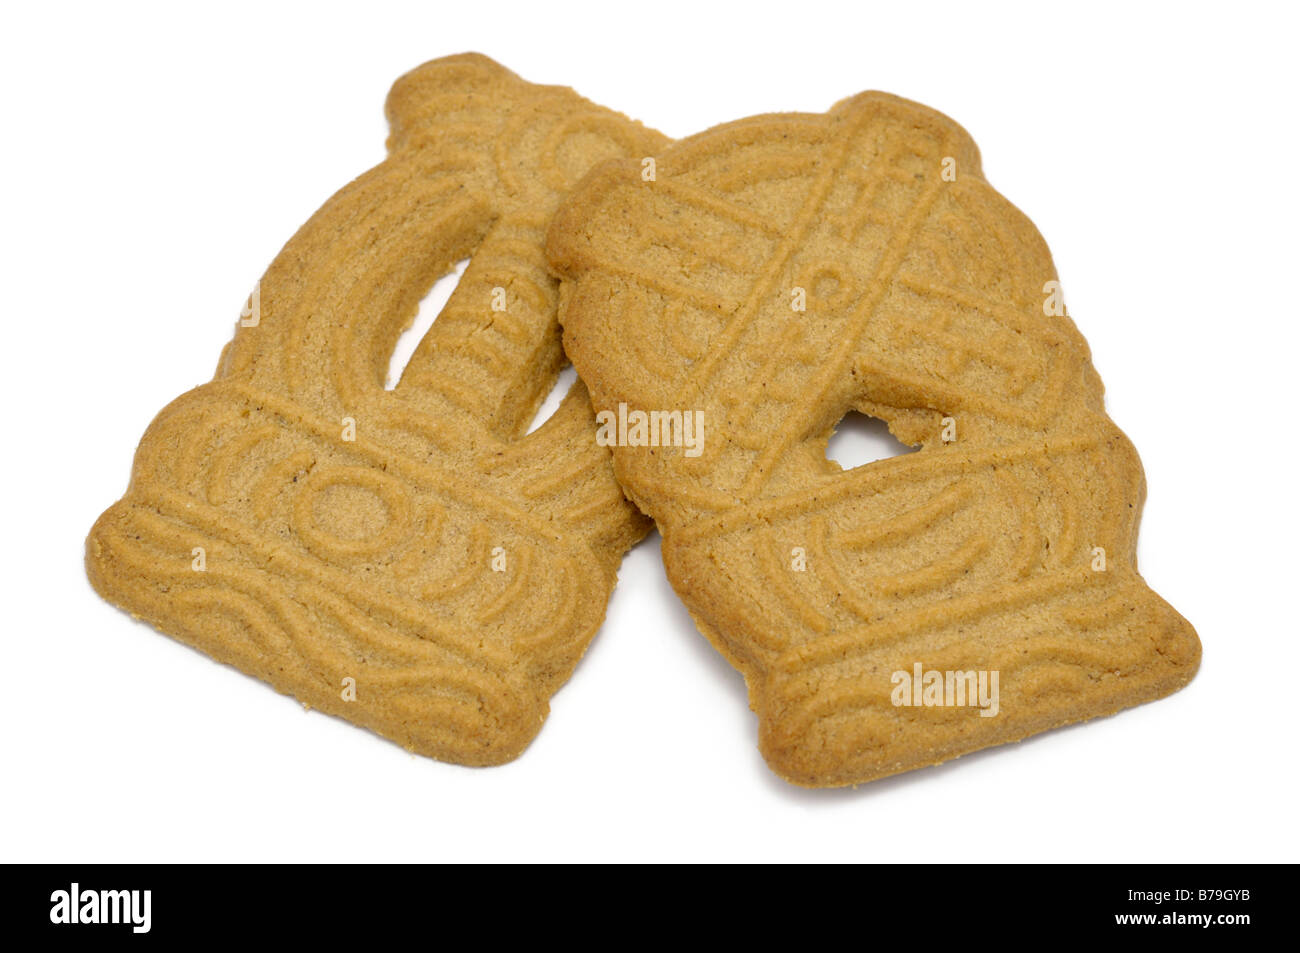 Spiced Cookies Stock Photos Spiced Cookies Stock Images Alamy